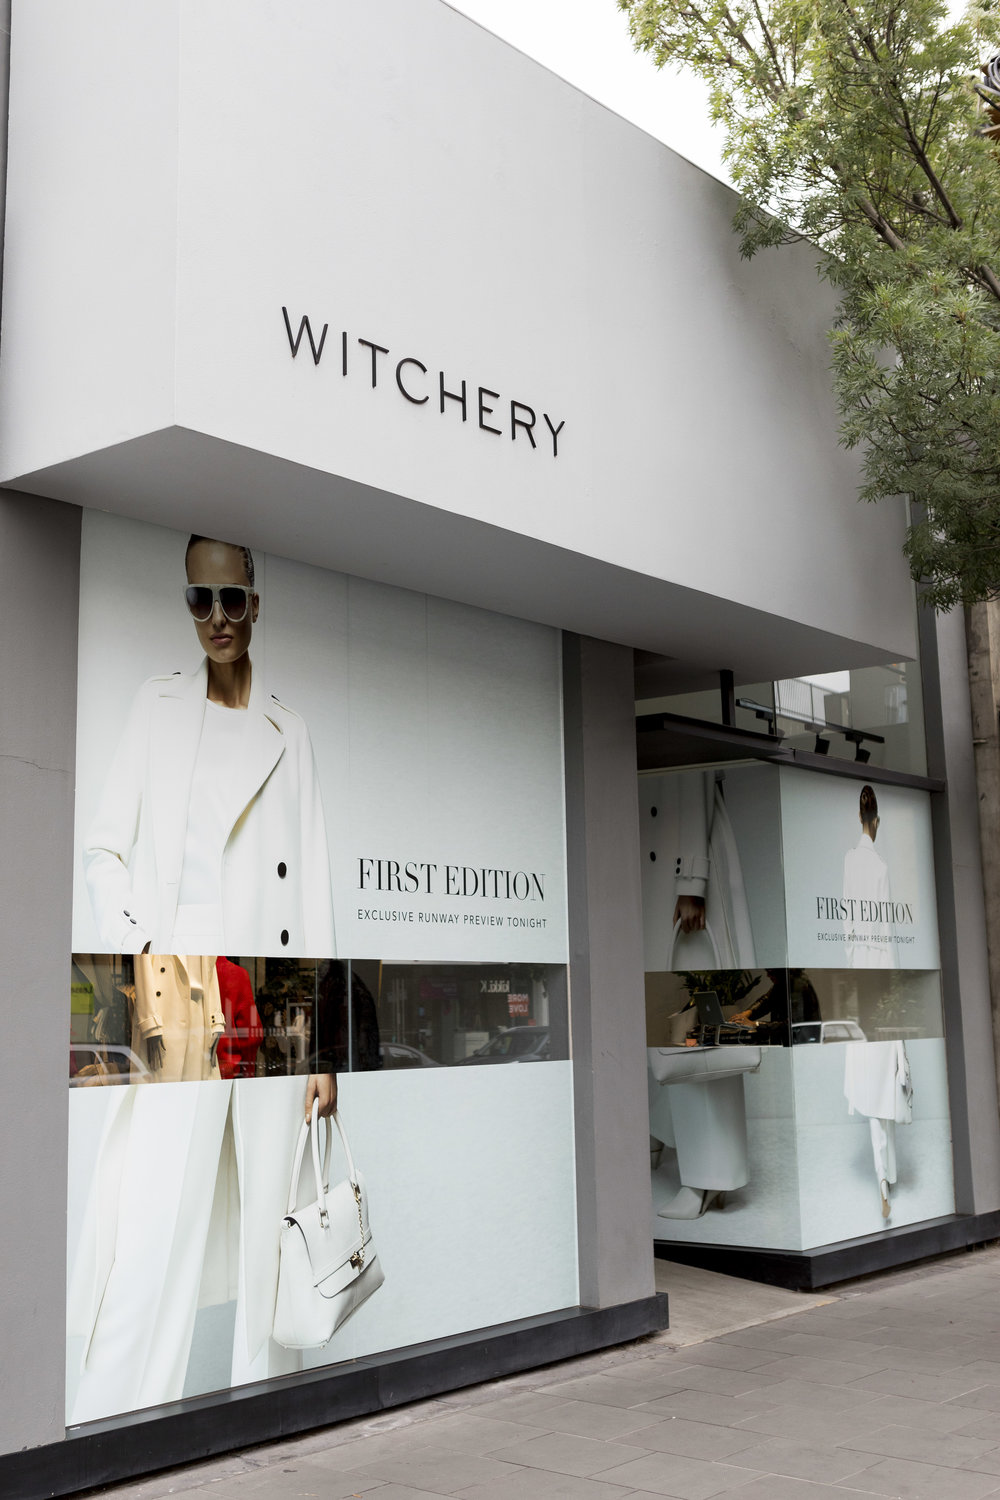 Witchery Chapel St Finals_Liz Sunshine_0 1_FULLSIZE JPEG 300DPI ADOBE RGB 5MB-14.jpg